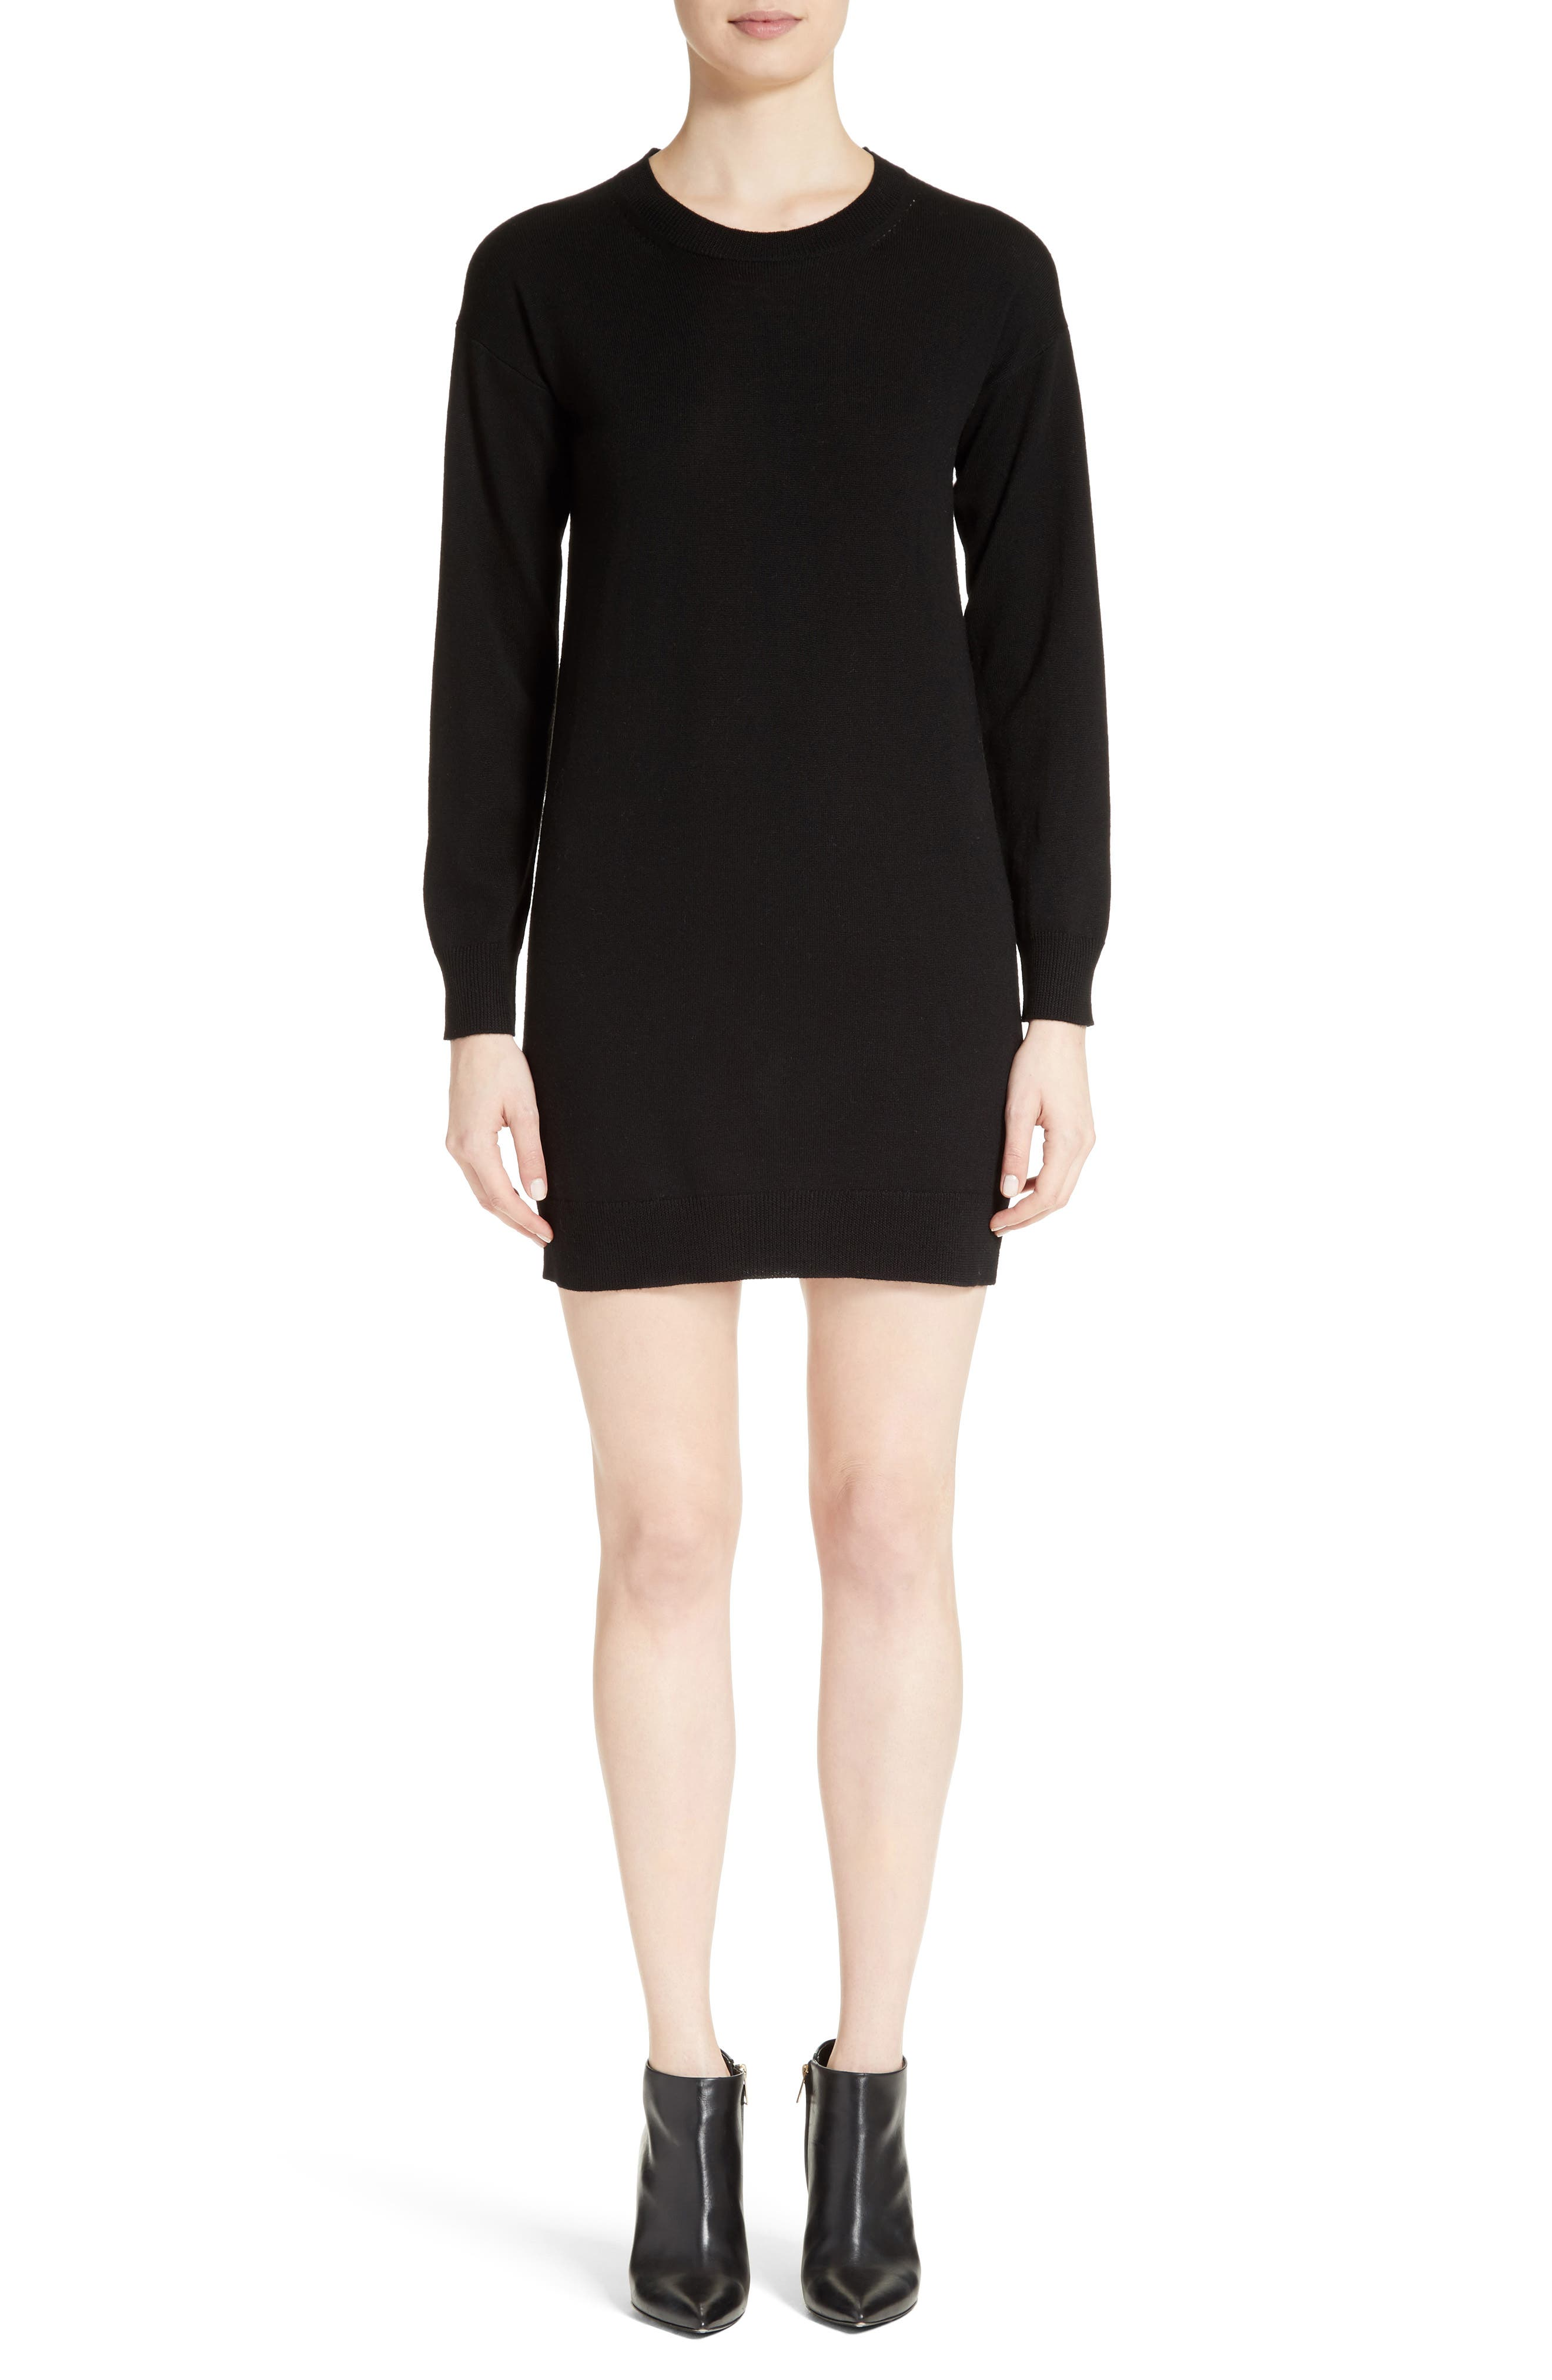 Alewater Elbow Patch Merino Wool Dress,                             Alternate thumbnail 2, color,                             BLACK